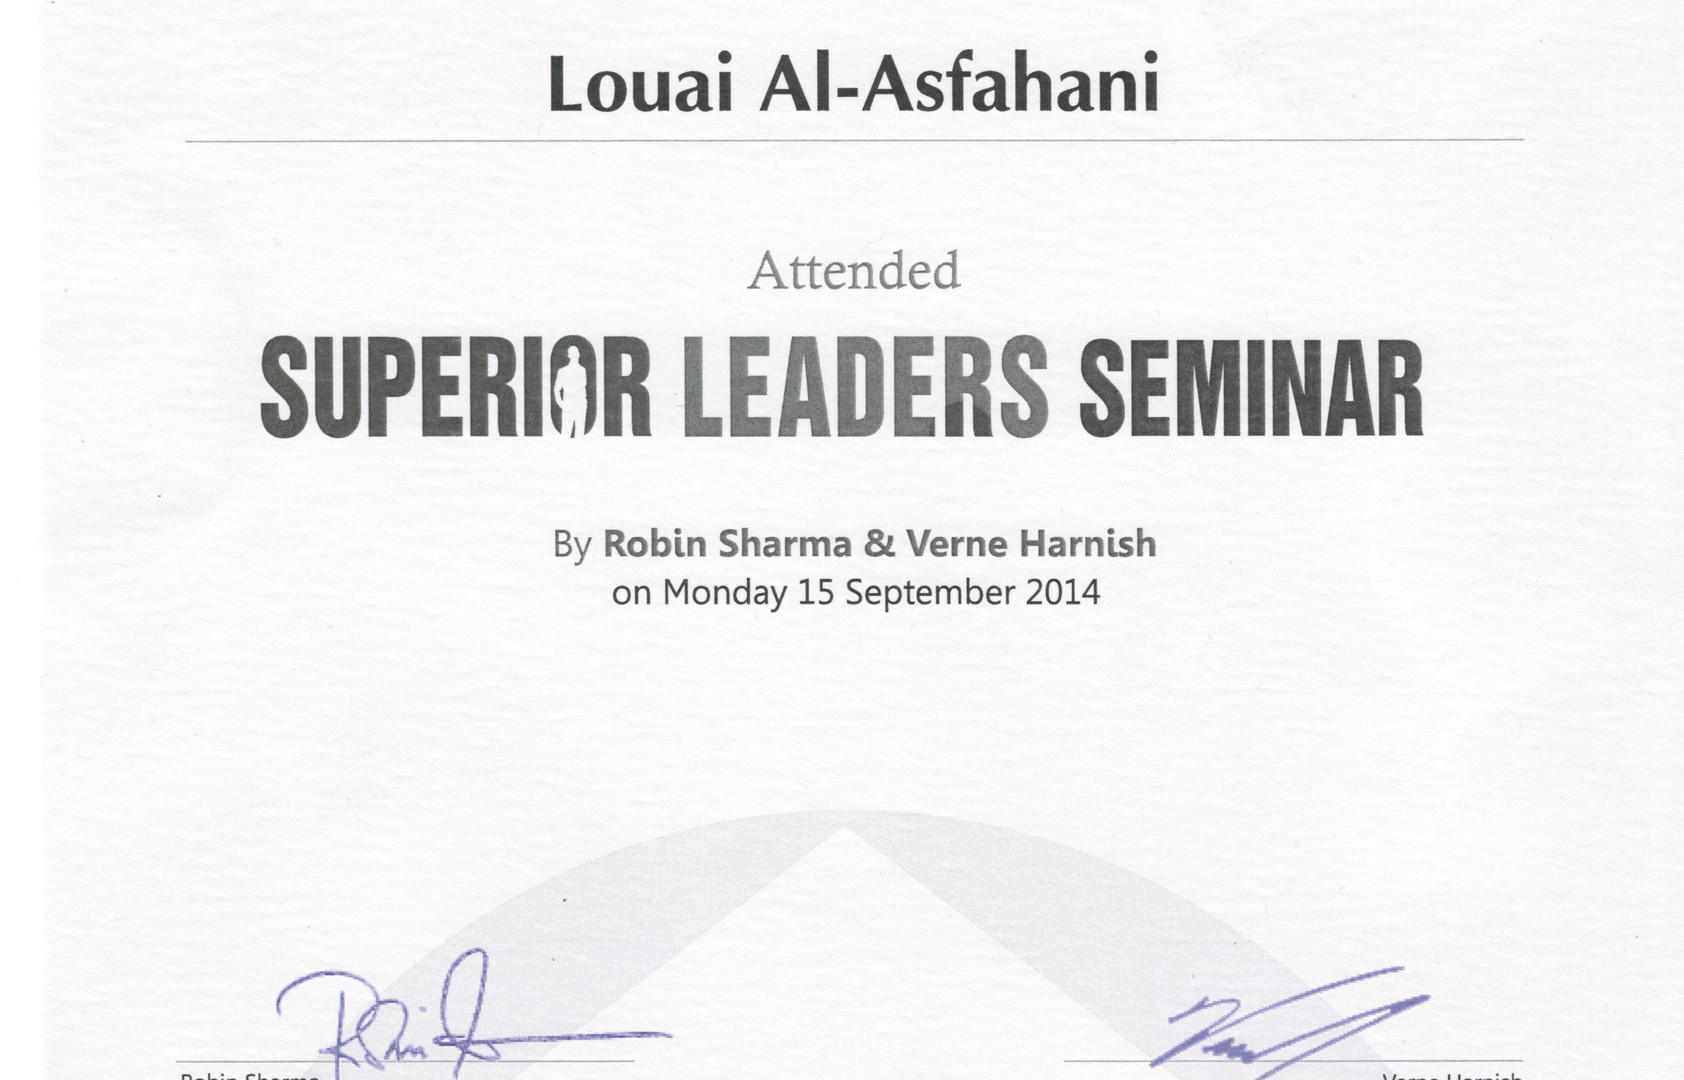 Superior Leaders Seminar_Certificate of